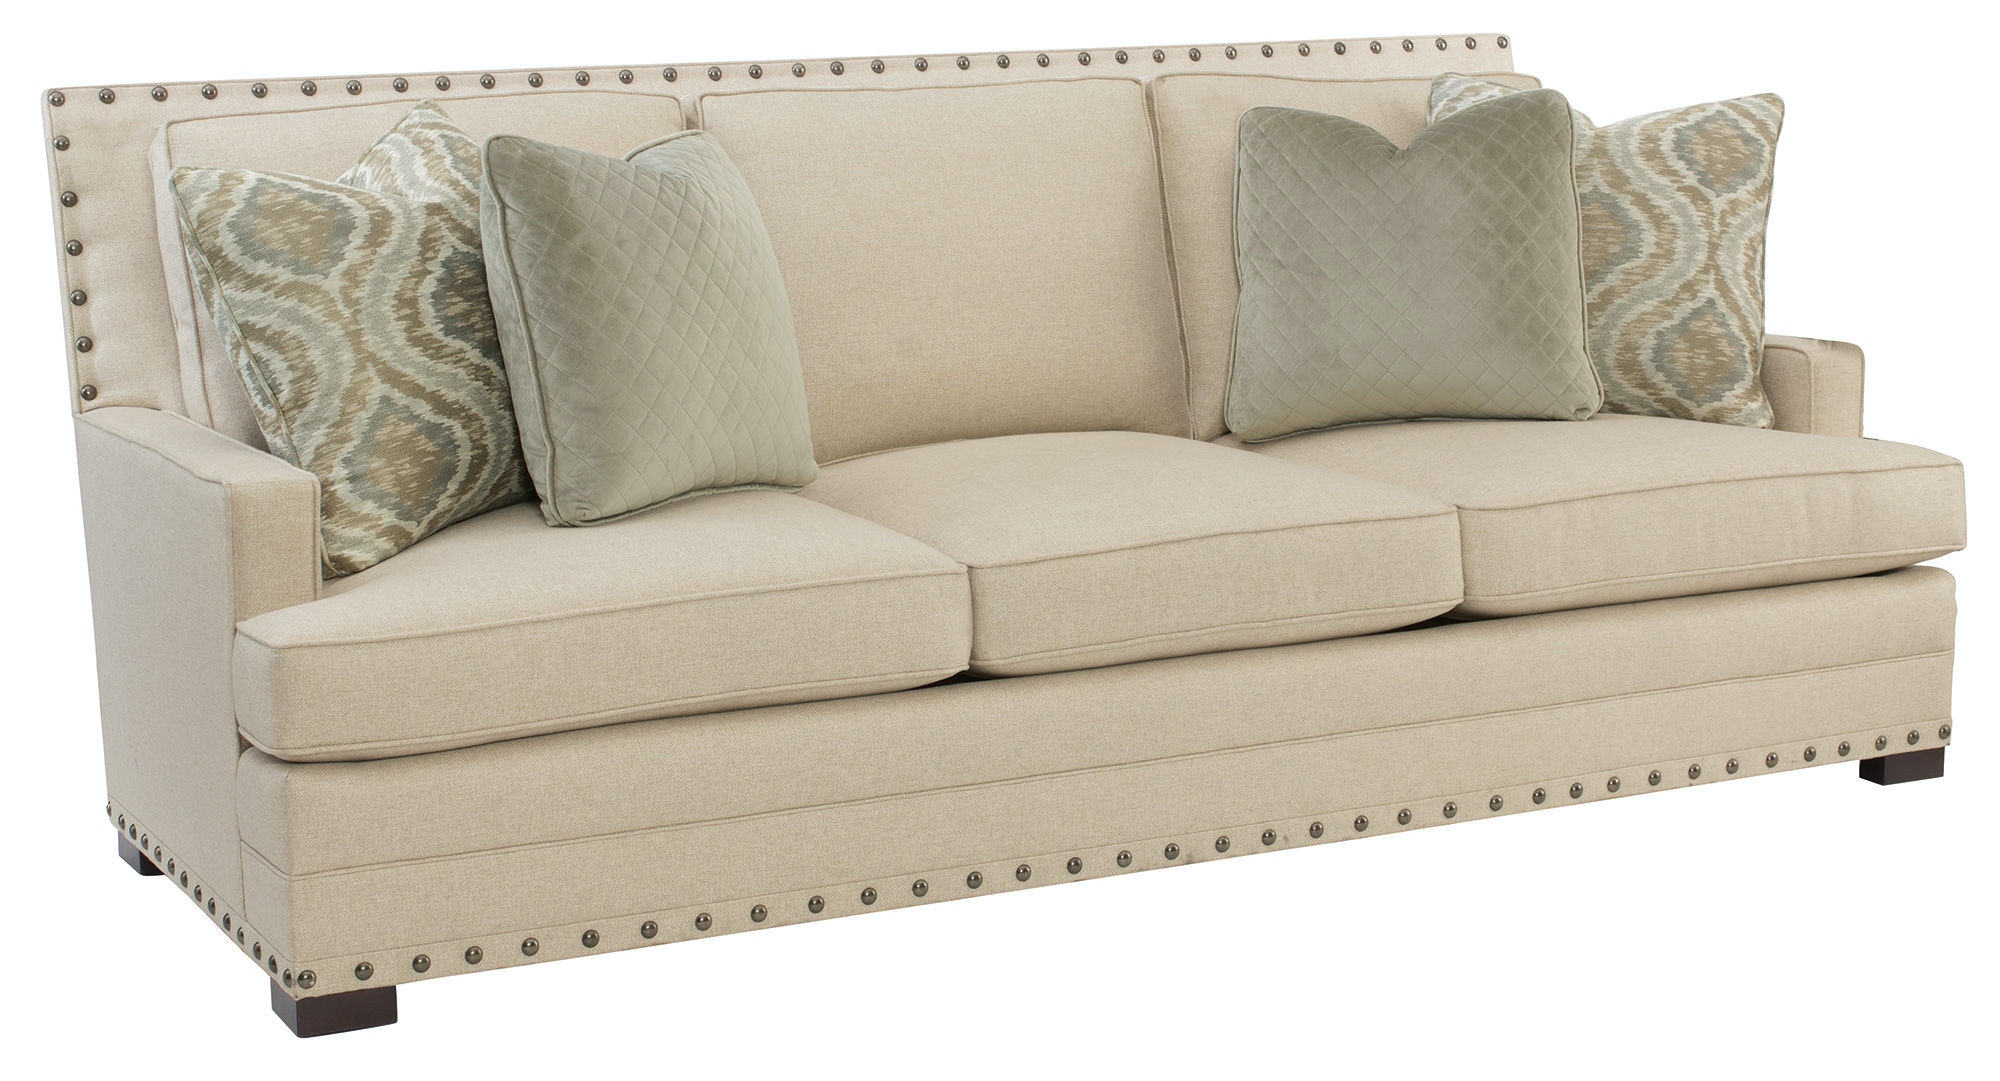 bernhardt living room furniture ideas on sofa b6267 gorman s metro detroit and at